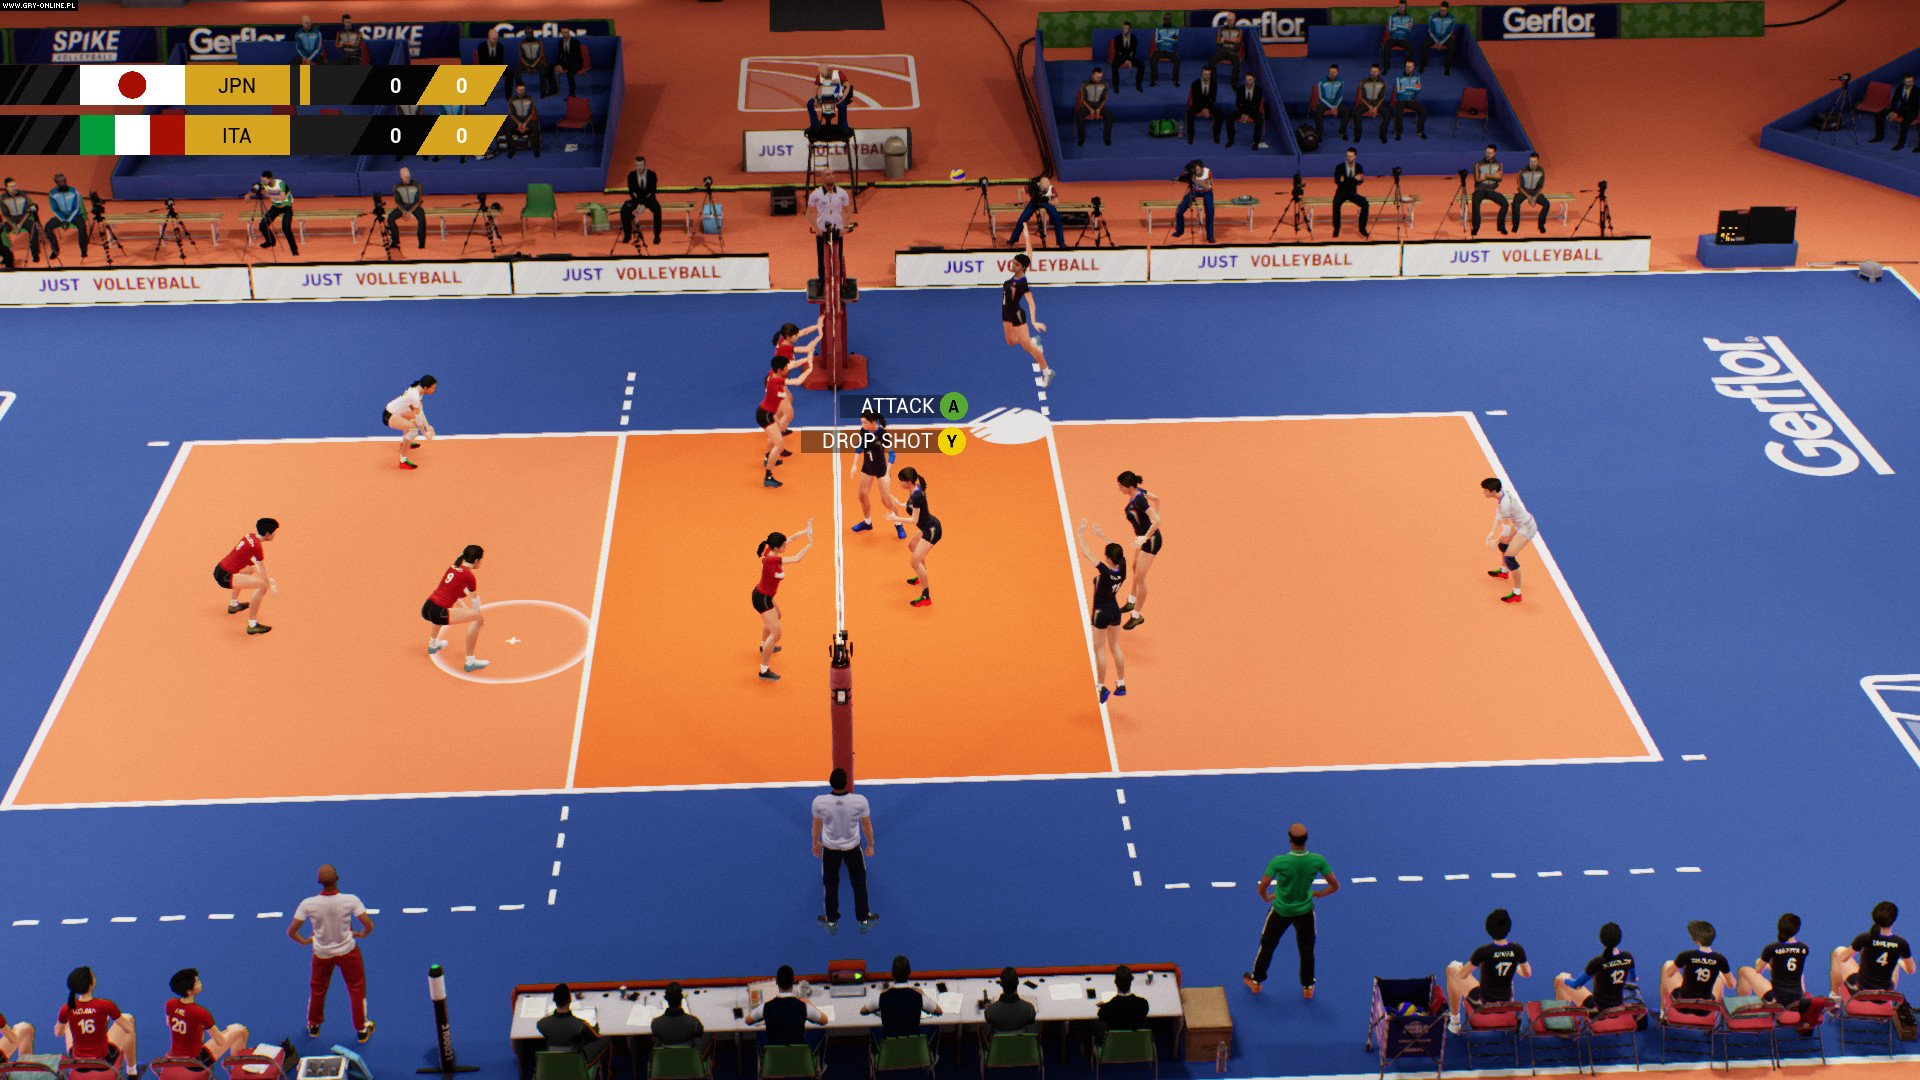 Spike Volleyball PC, PS4, XONE Games Image 3/5, Black Sheep Studio, Bigben Interactive